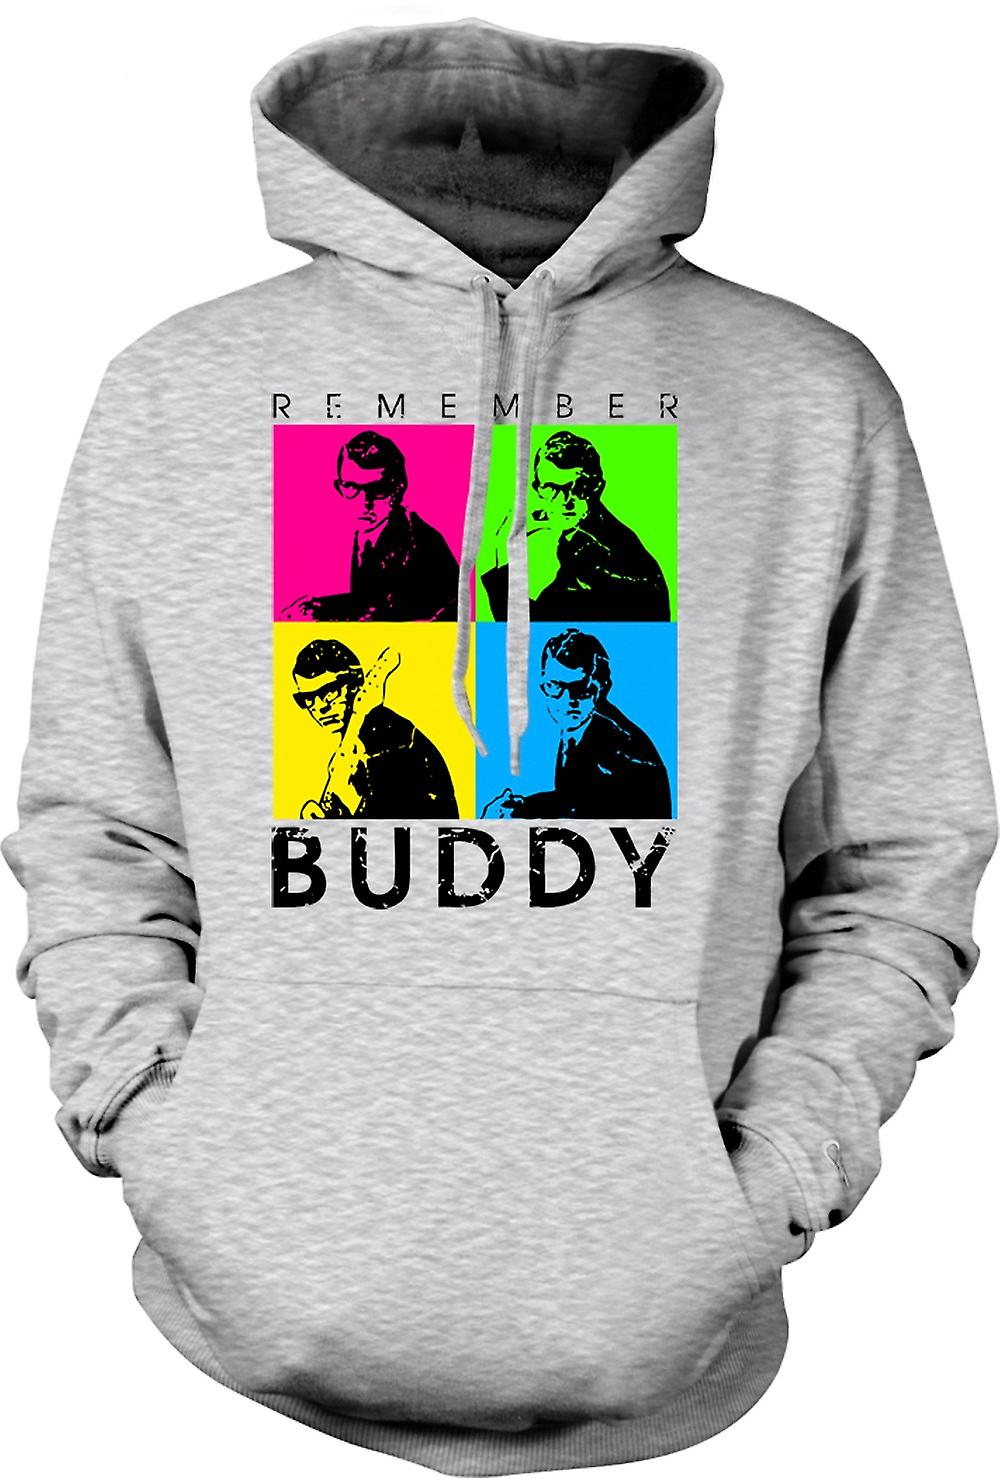 Mens Hoodie - Buddy Holly Remember